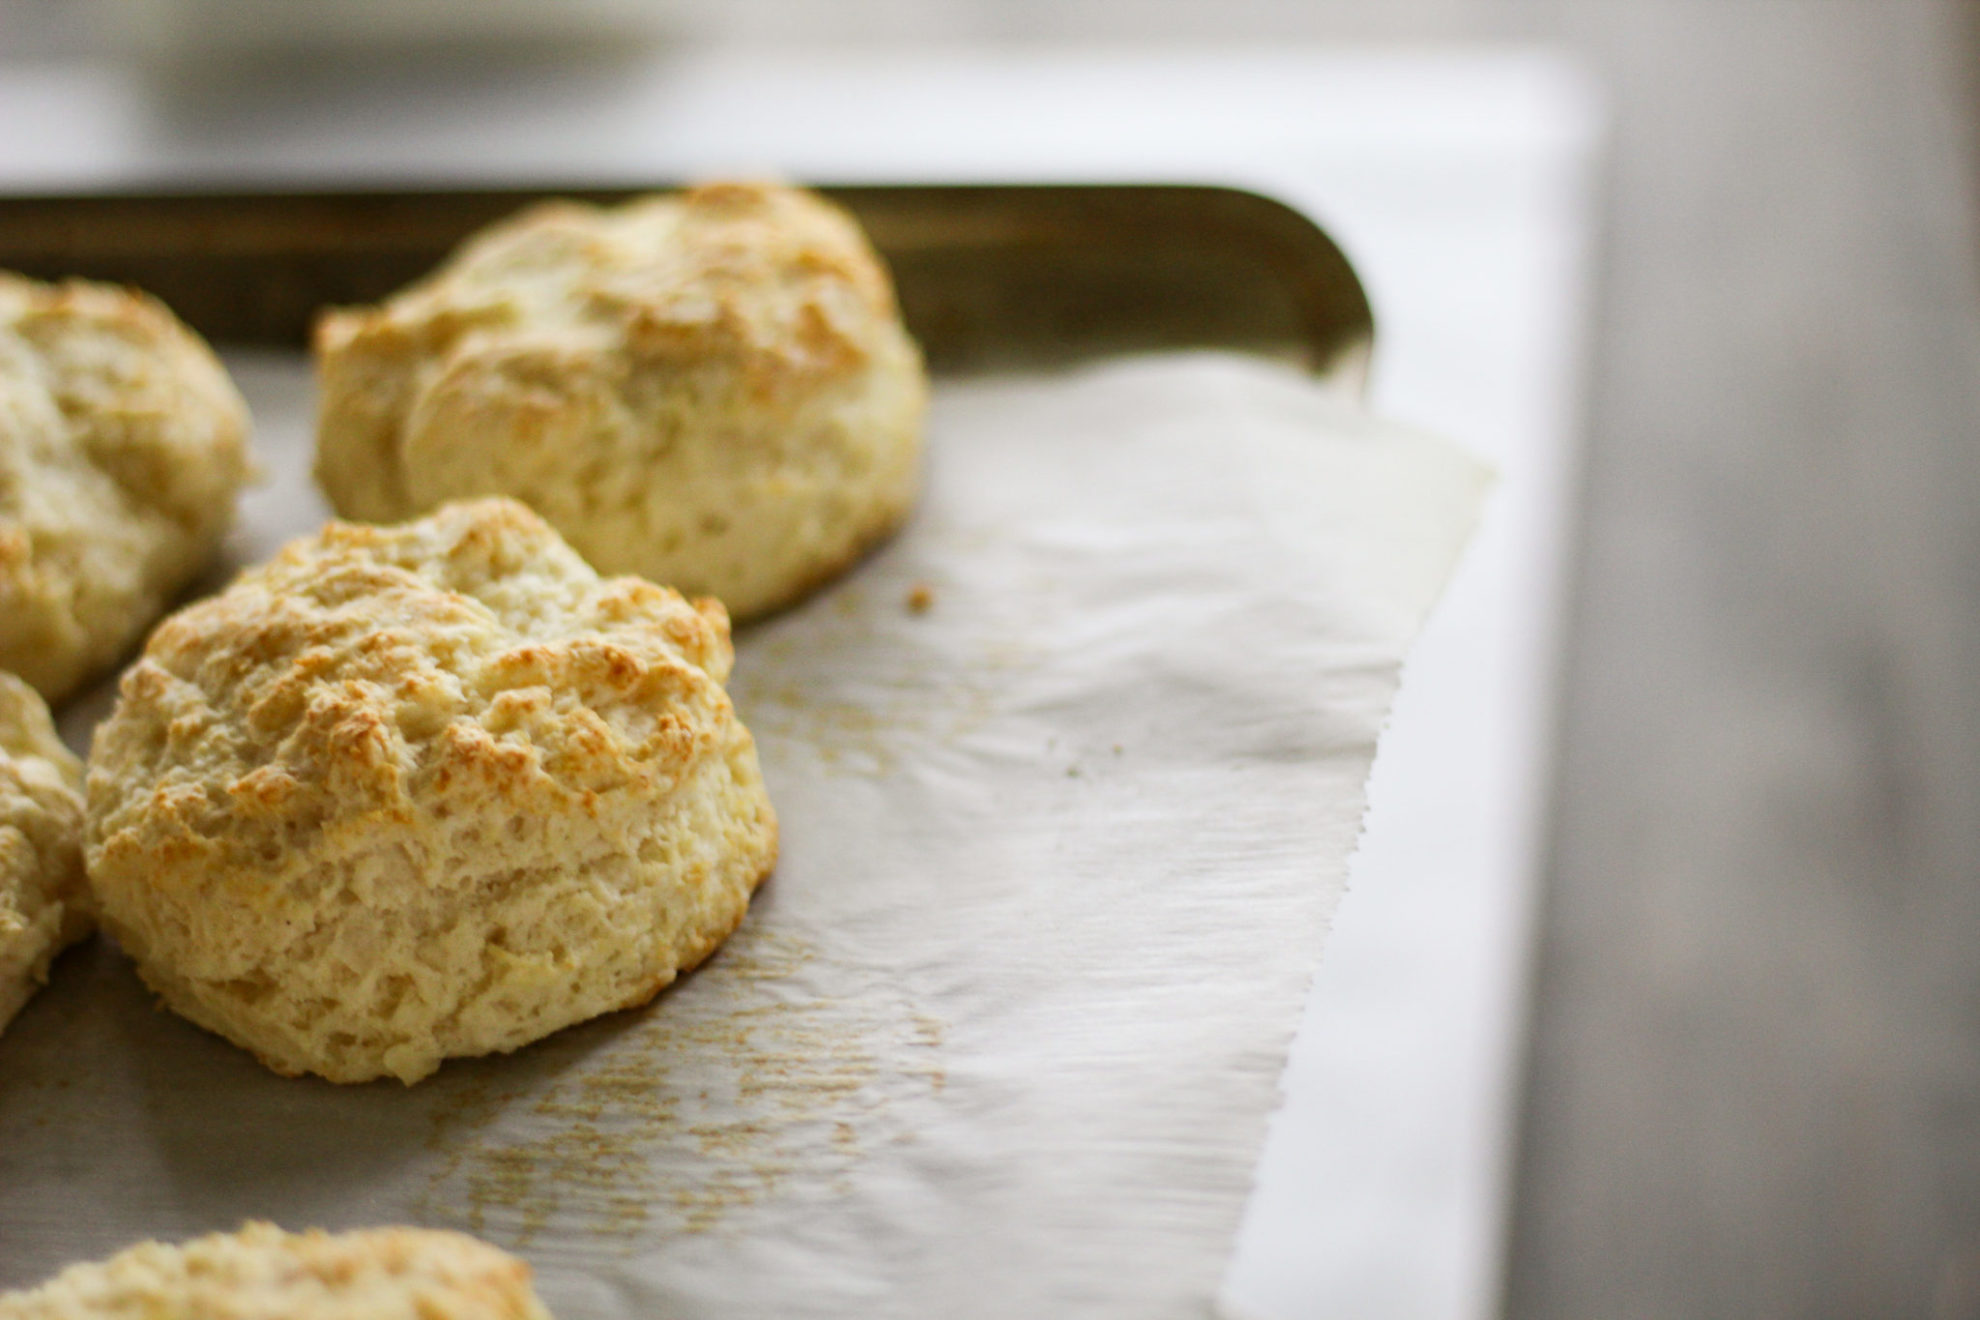 a pan of golden homemade biscuits